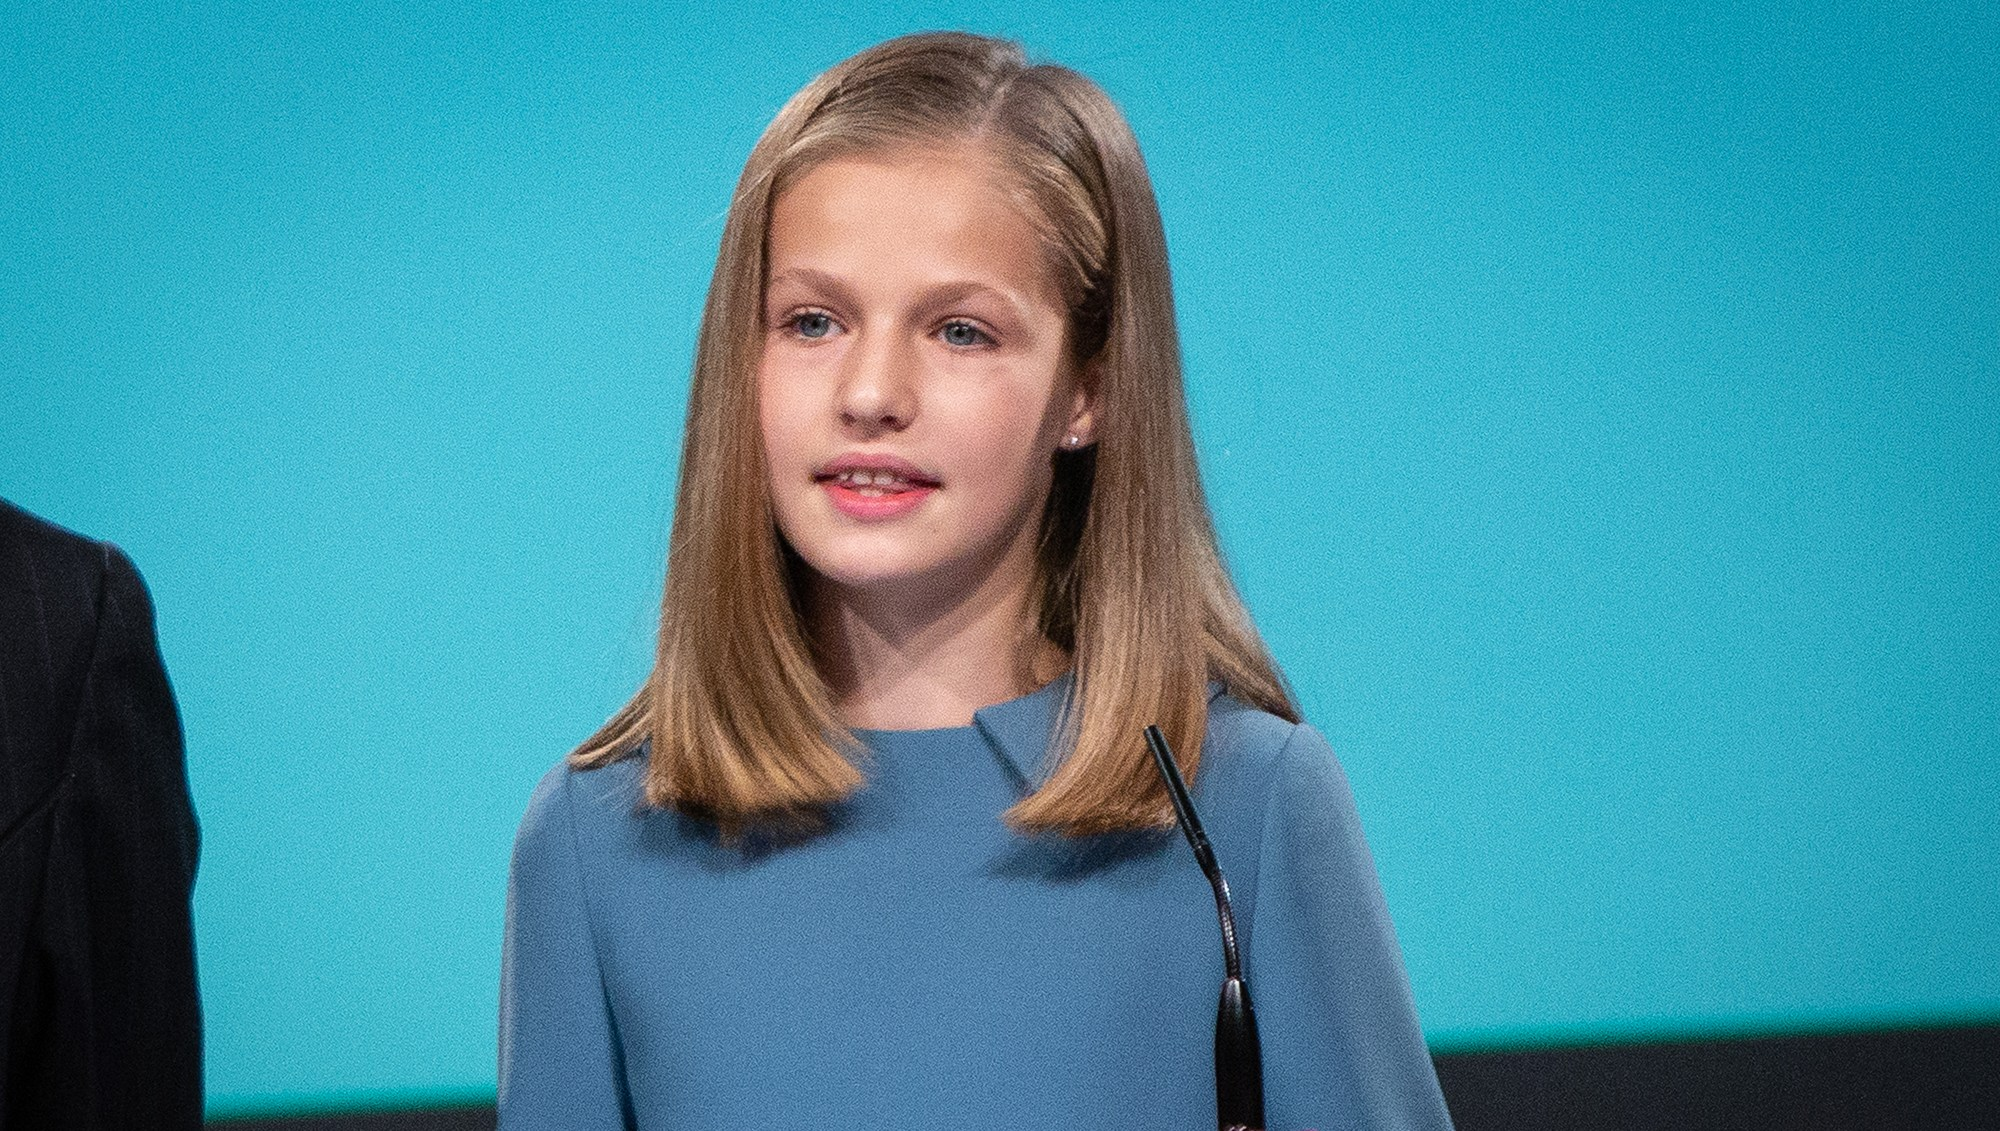 Princess Lenor of Spain, 13, Delivers First Royal Speech